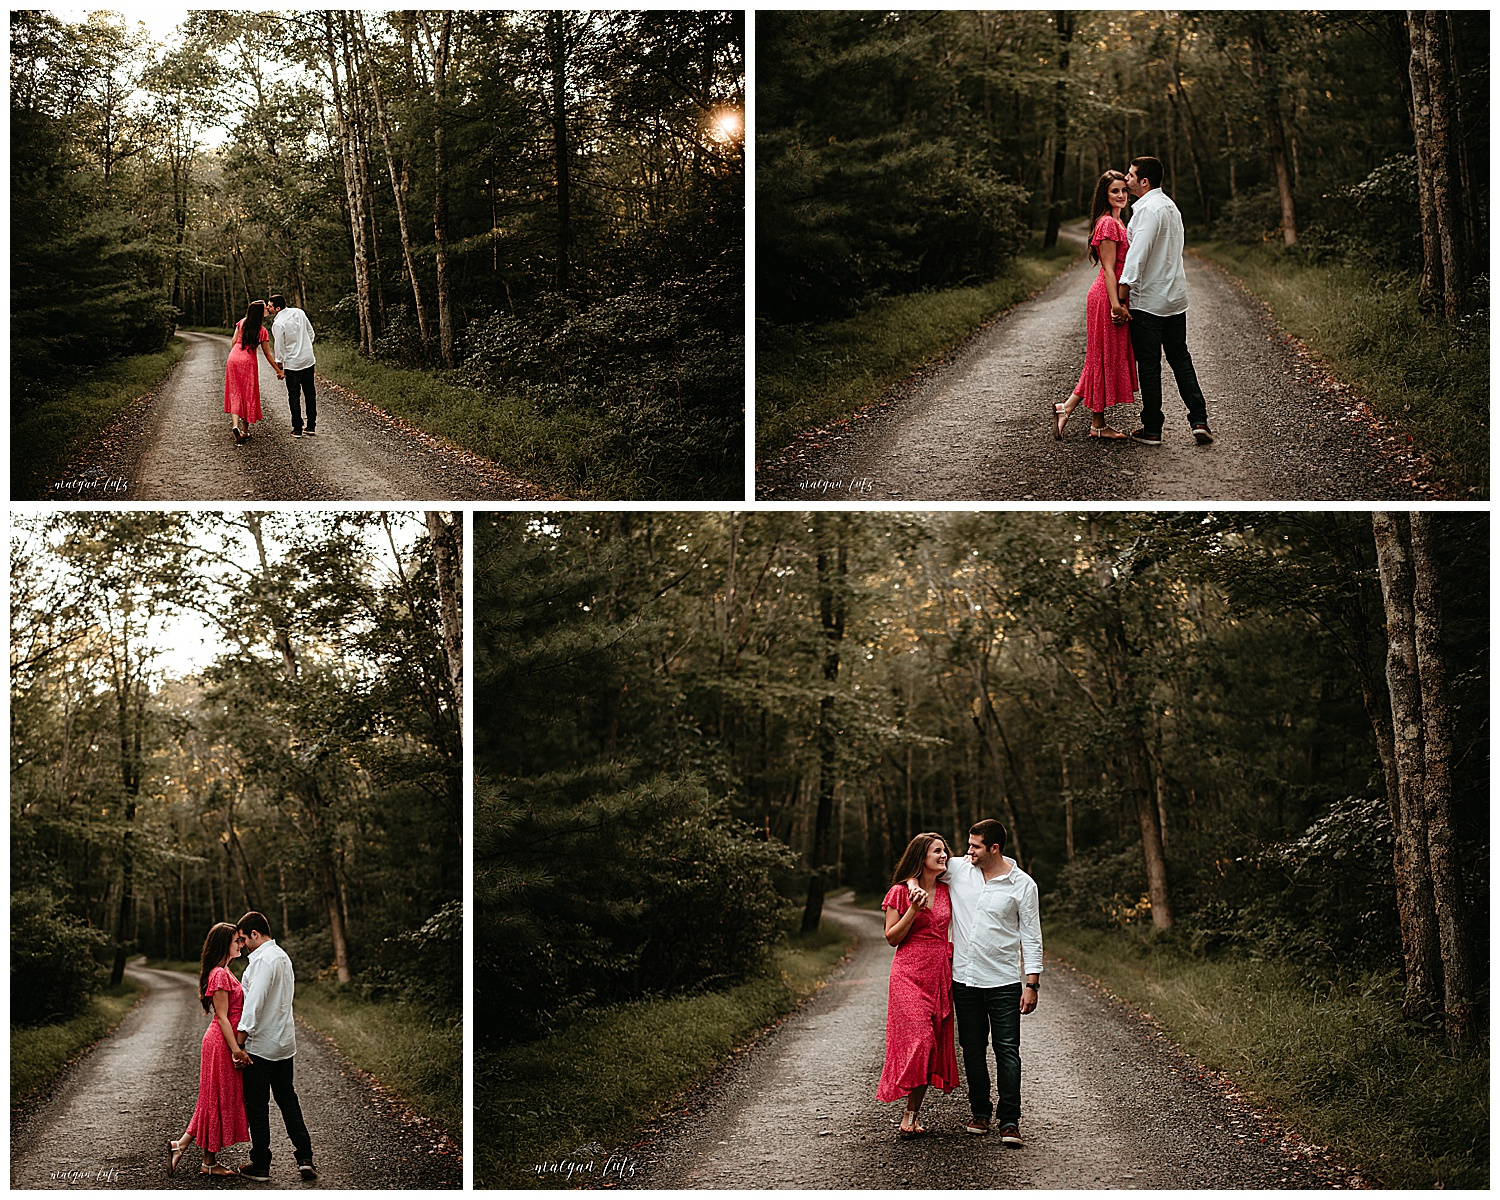 NEPA-Mount-Pocono-Lehigh-Valley-Wedding-Engagement-photographer-at-Hickory-Run-State-Park-Whitehaven-PA_0012.jpg